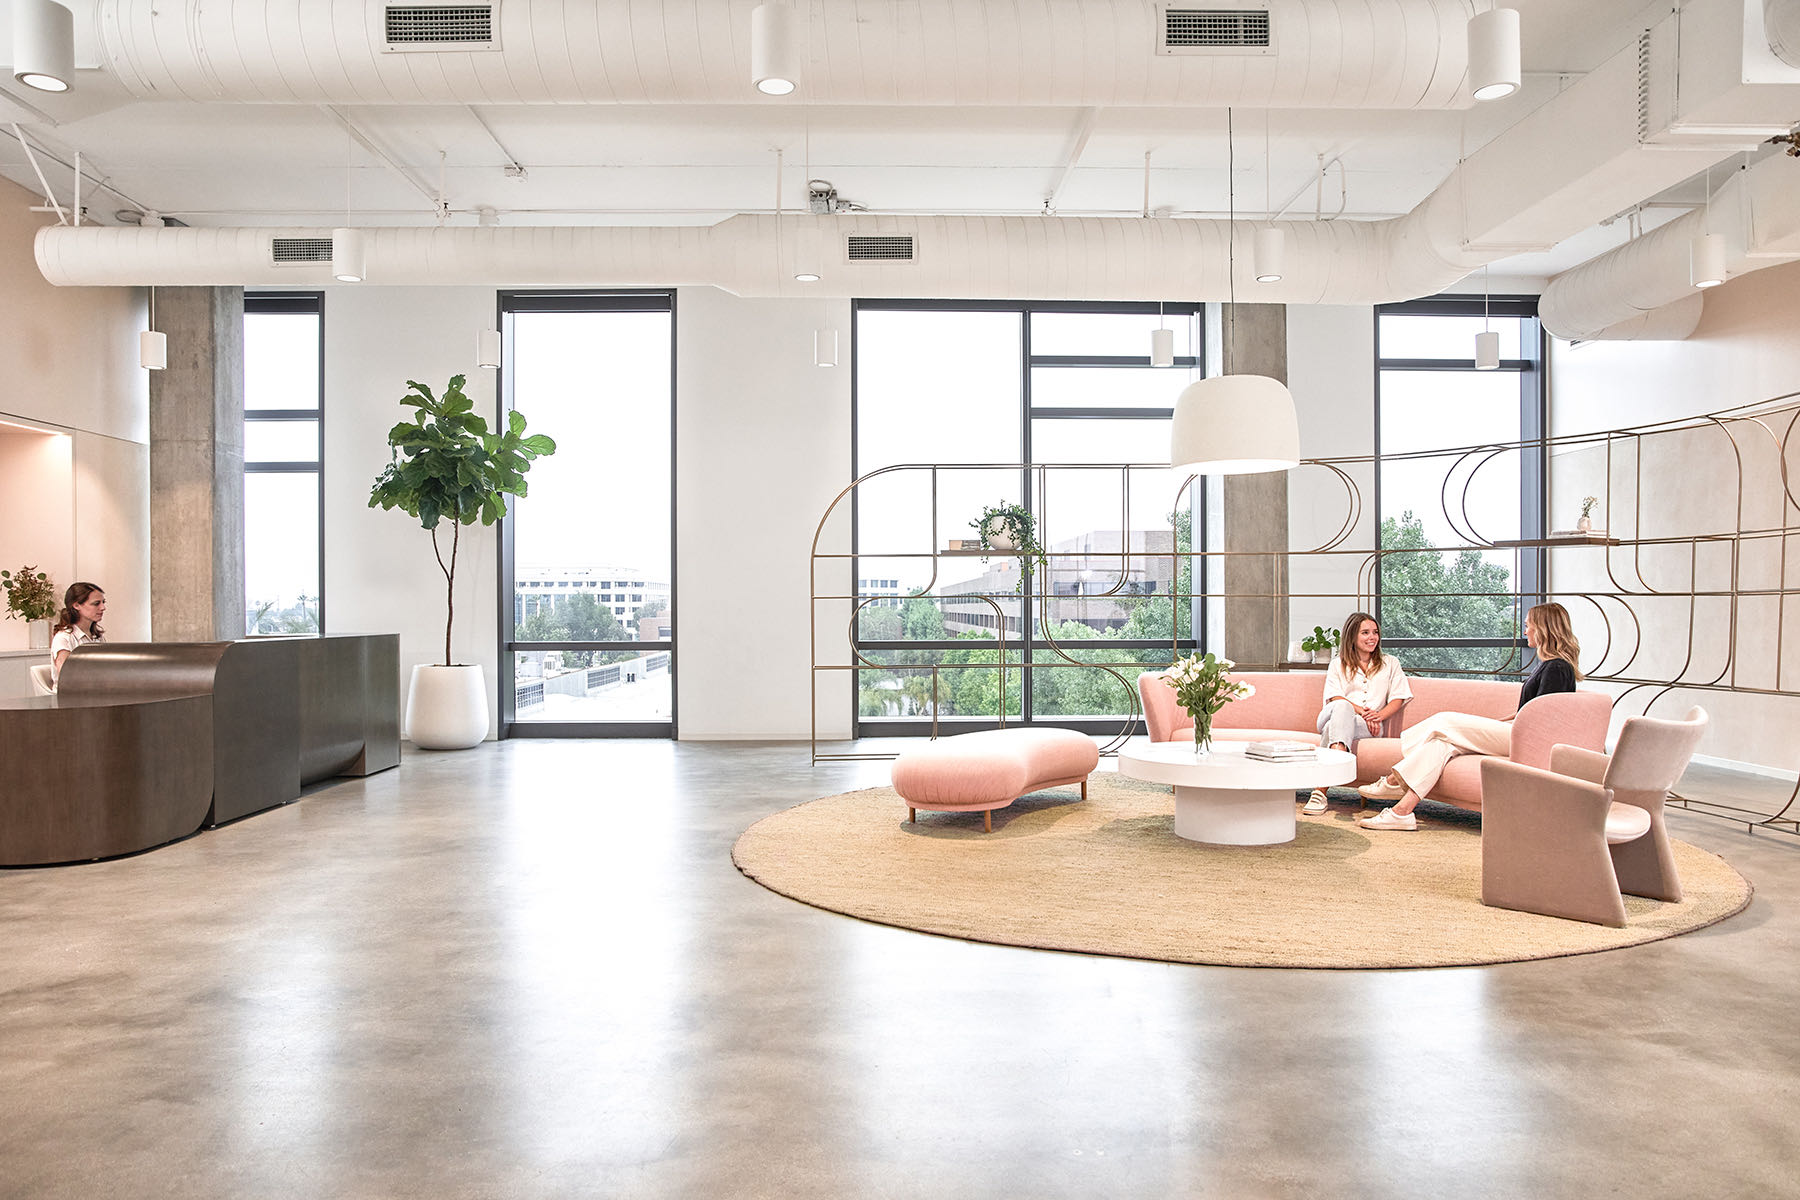 A Tour of Goop's New Santa Monica Office